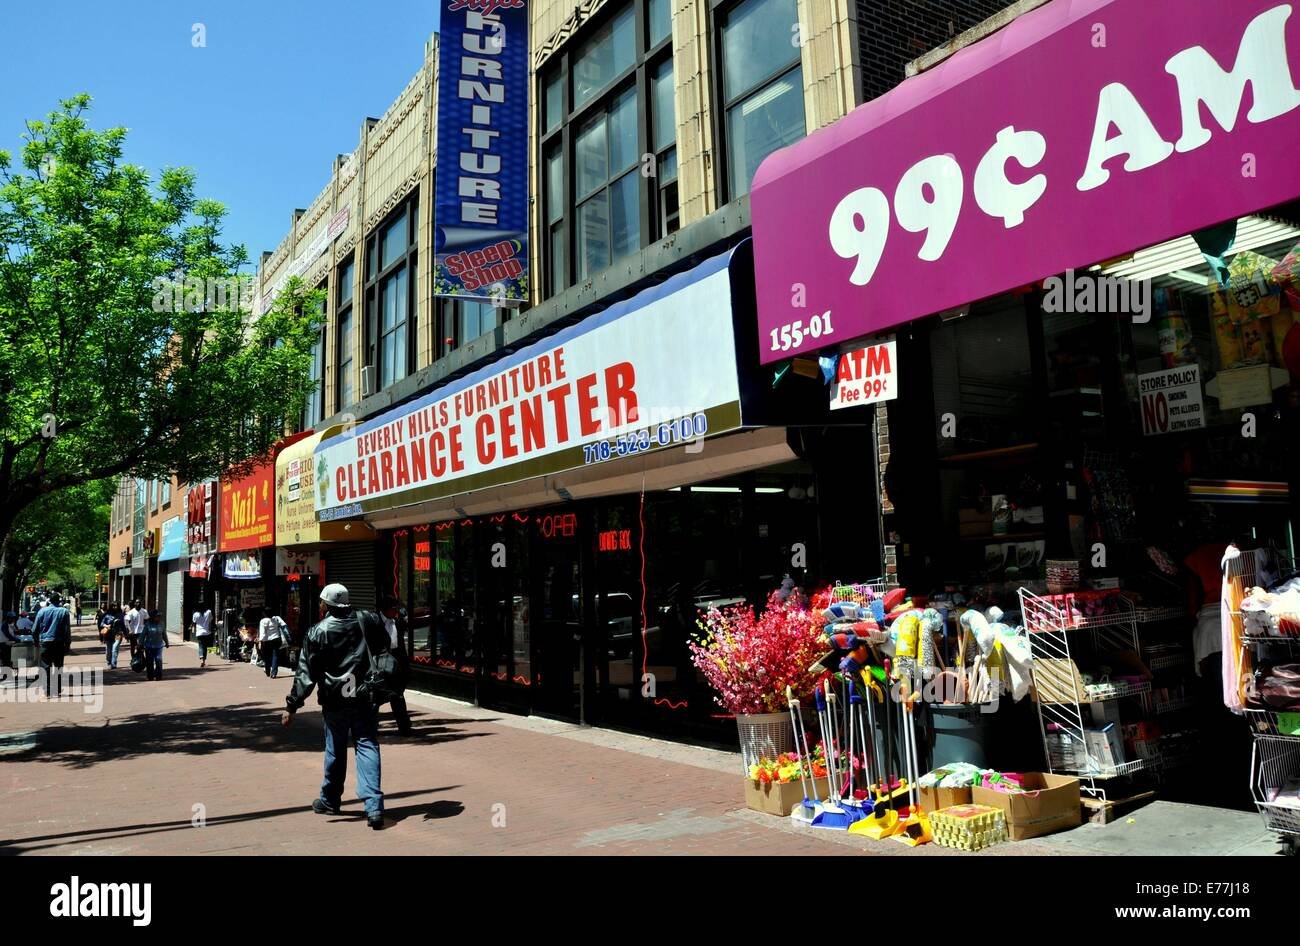 NYC 99 Cent Store And Other Bargain Businesses Line Busy Jamaica Avenue The Main